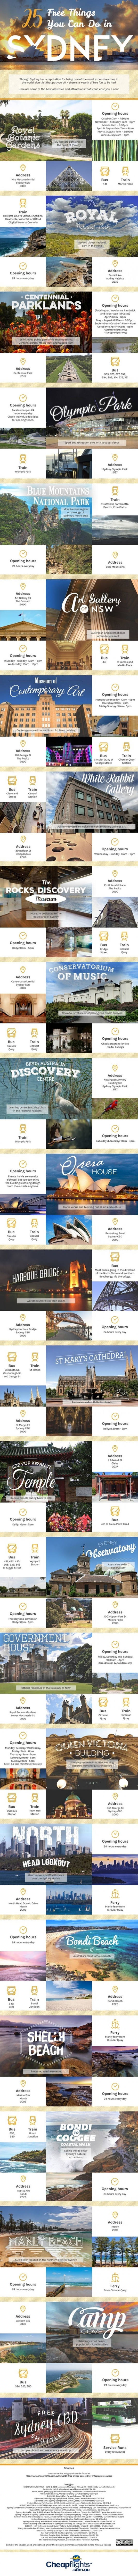 25 Free Things to Do in Sydney (Infographic)